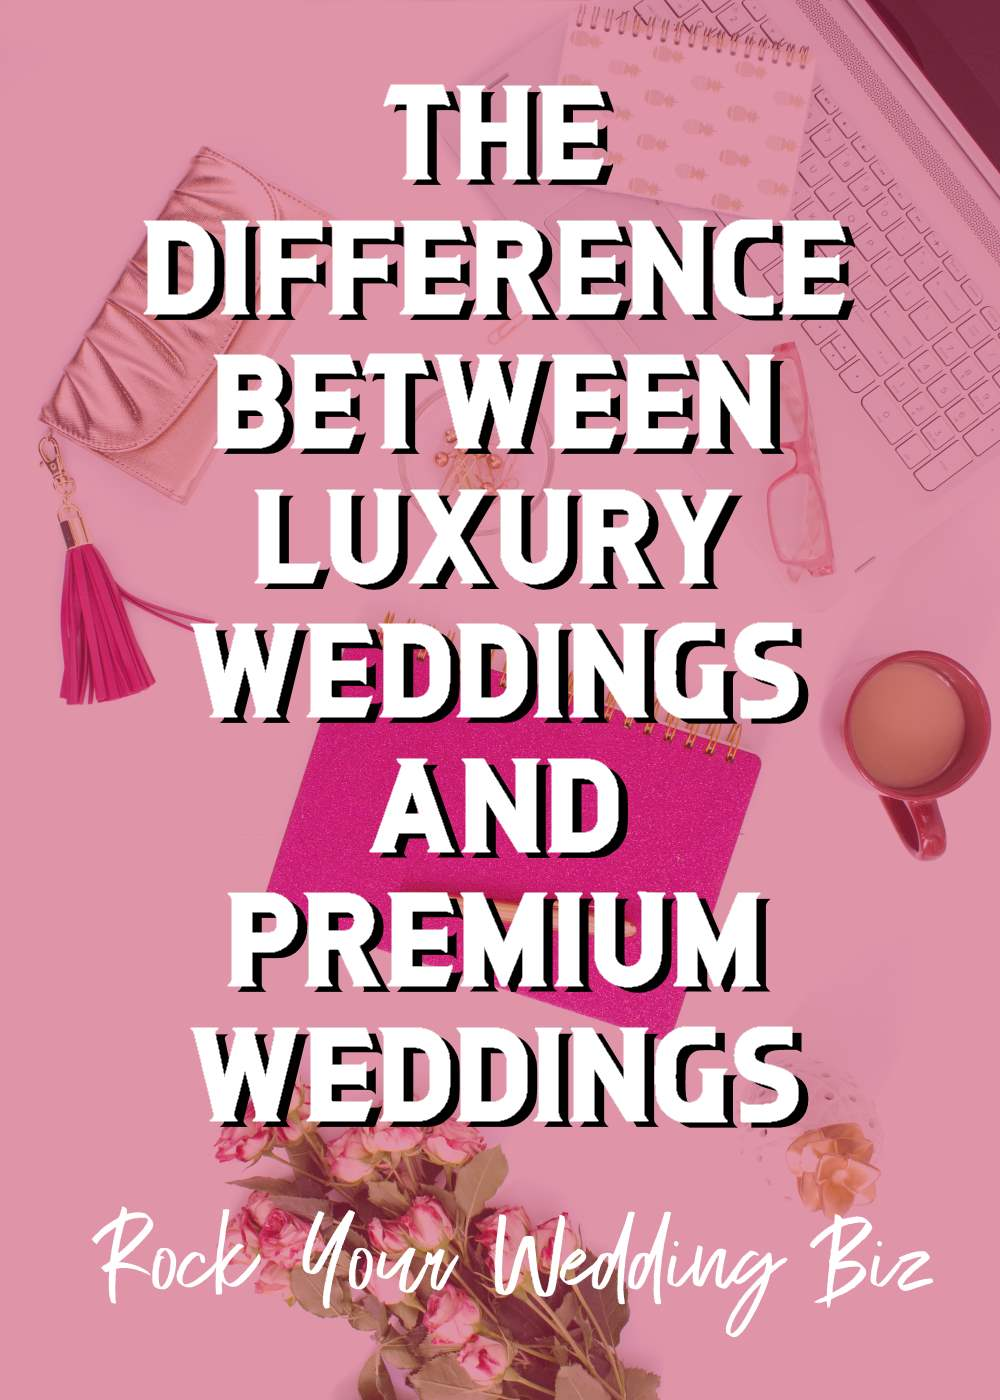 Episode 50: Luxury Weddings Vs Premium Weddings